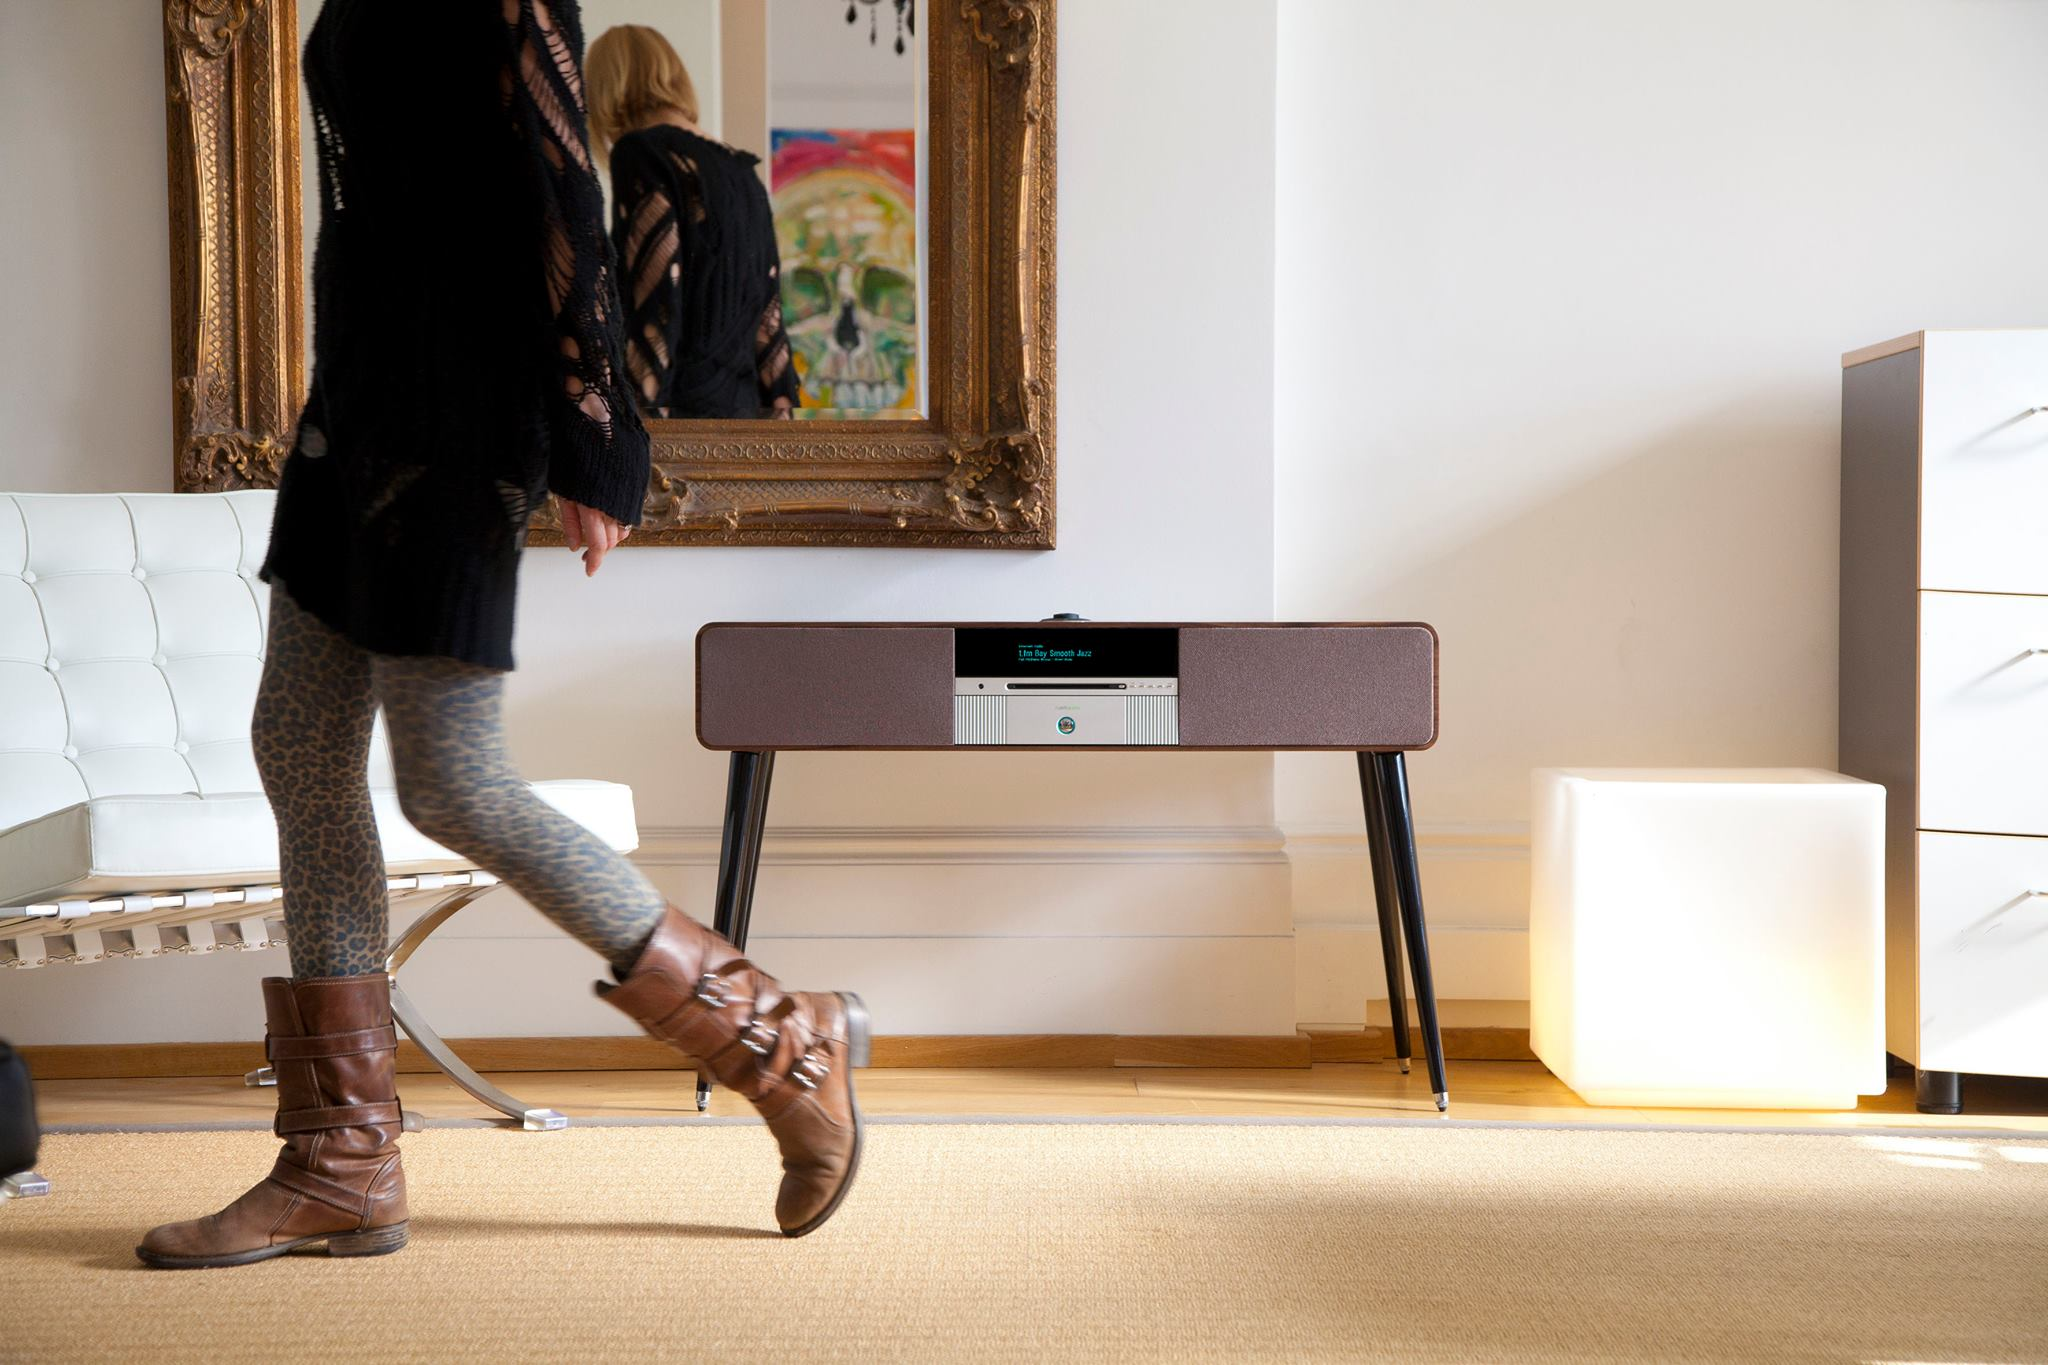 Ruark Audio continues to redefine the radiogram with its updated R7